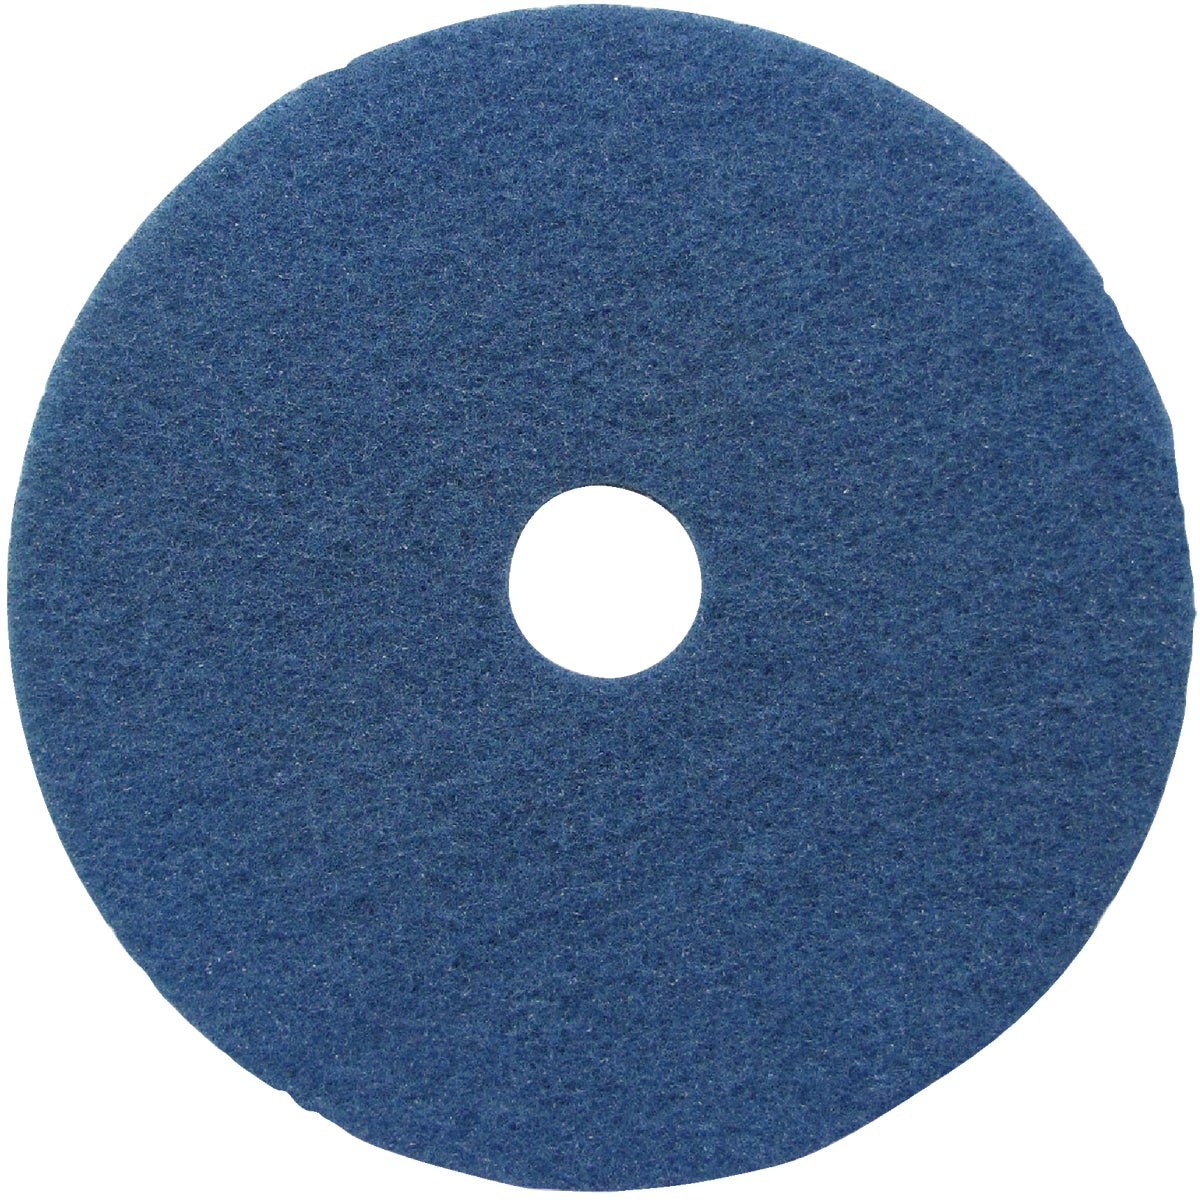 "17"" BLUE POLISH PAD"